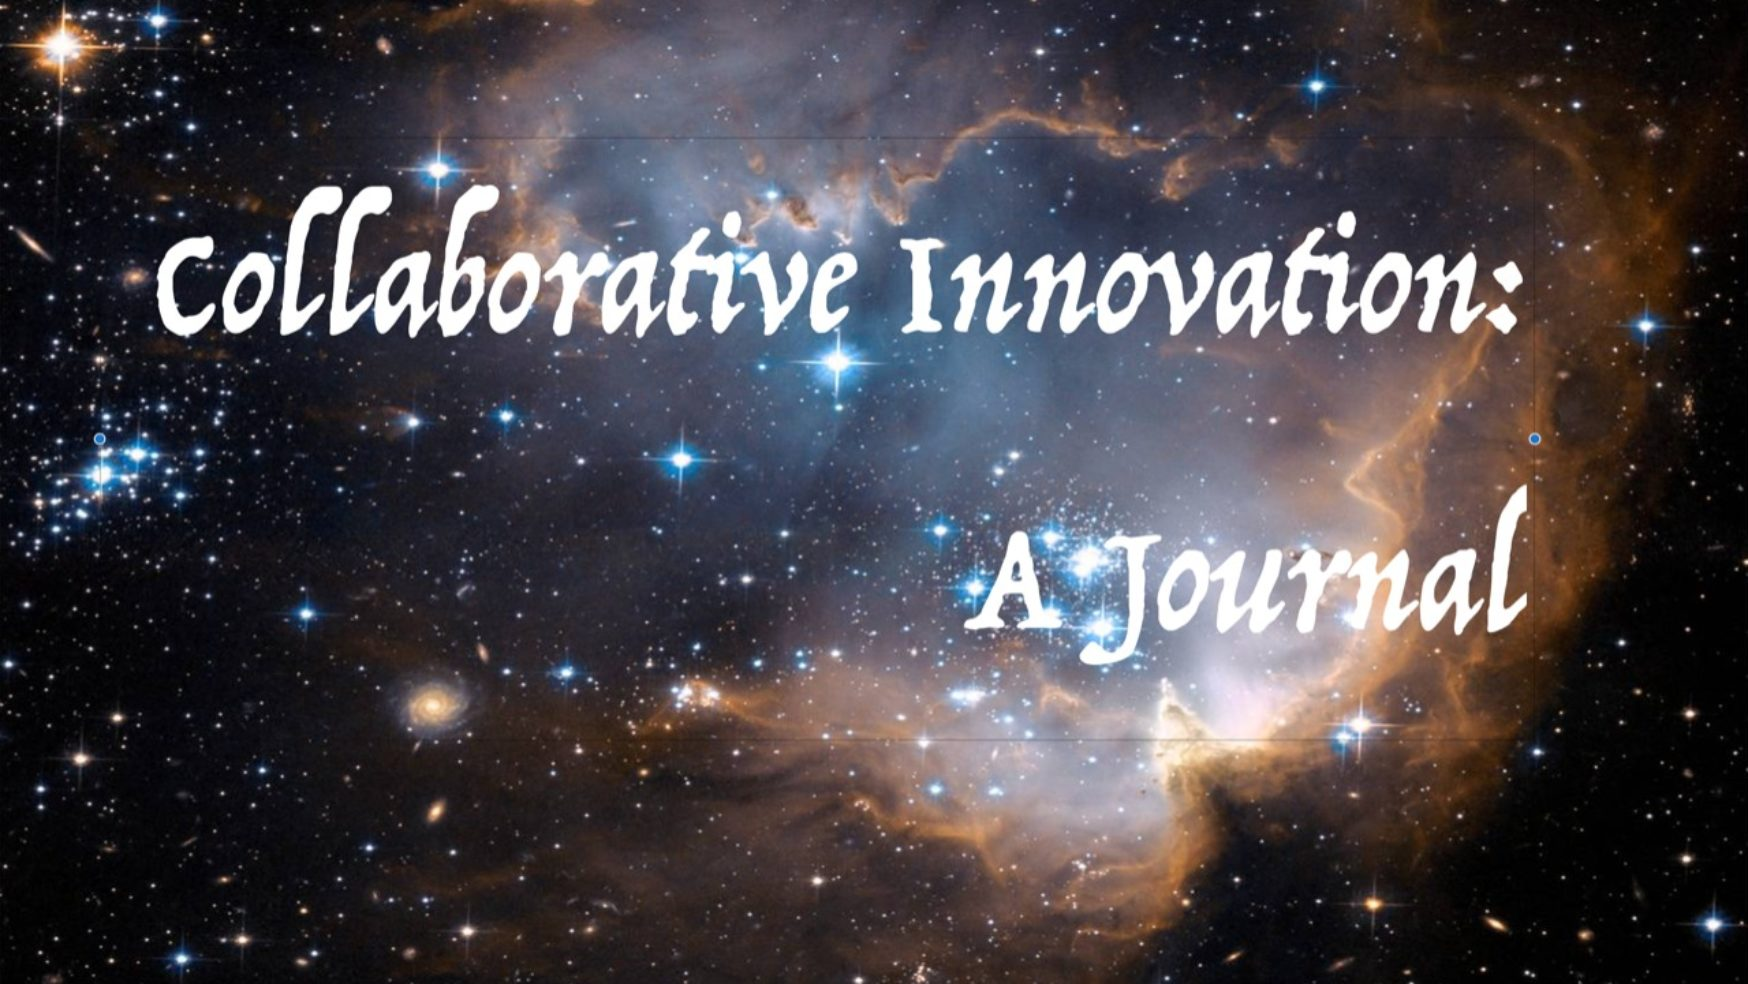 Collaborative Innovation: A Journal